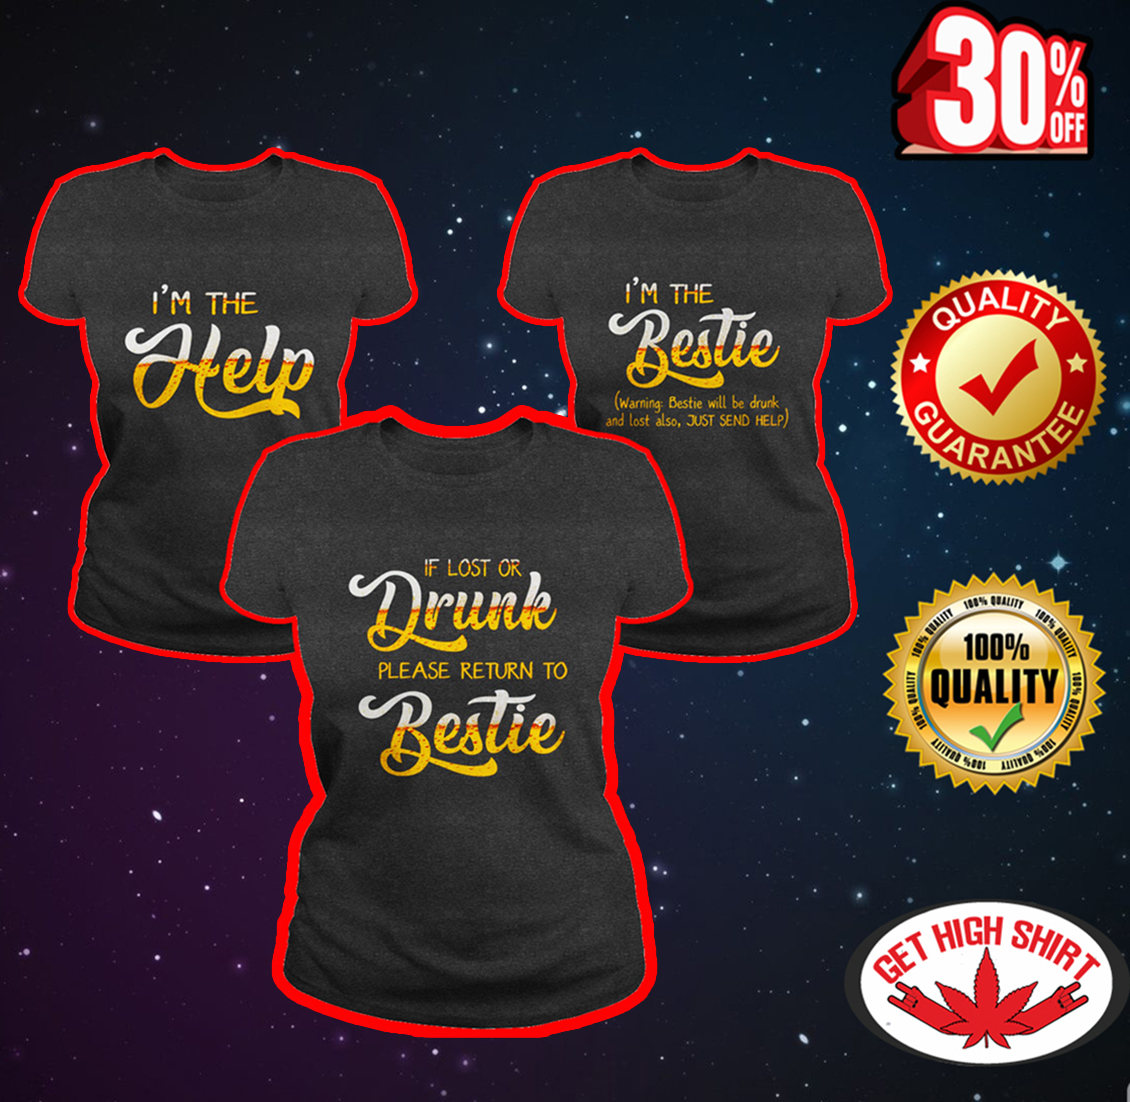 If lost or drunk please return to bestie shirts for three - grey shirt